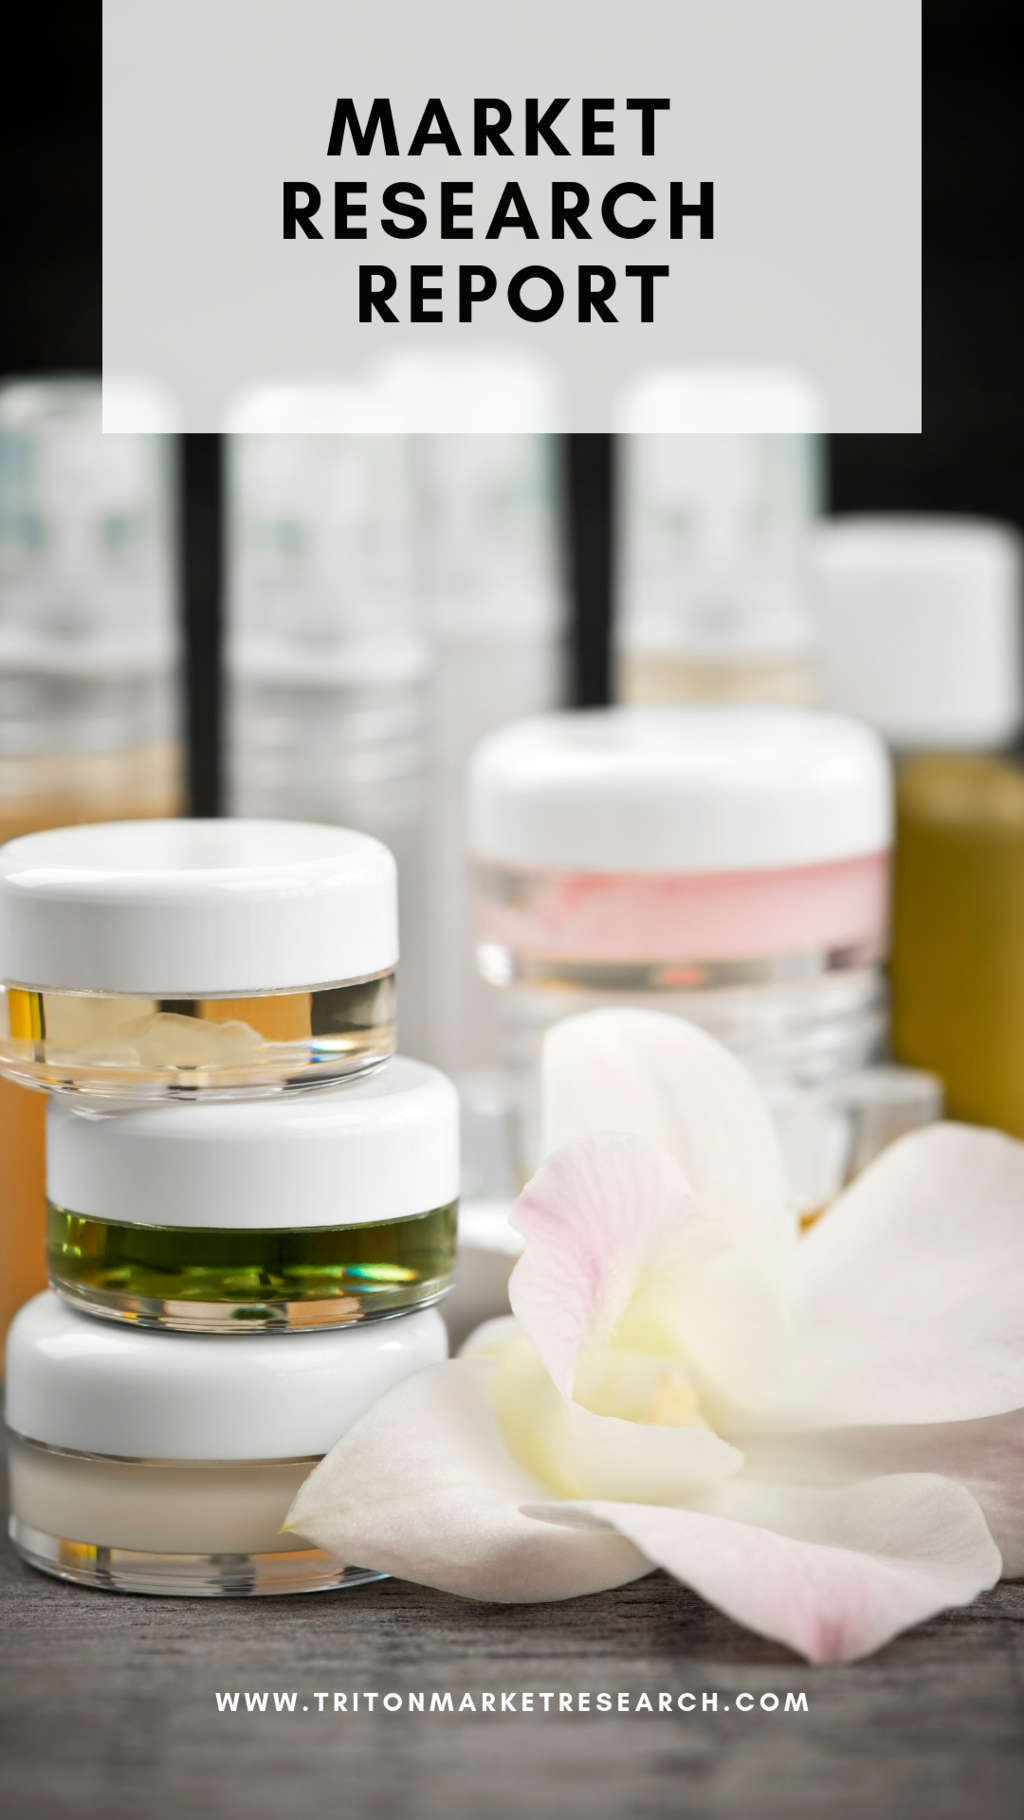 MIDDLE EAST AND AFRICA ANTI-AGING MARKET 2019-2027